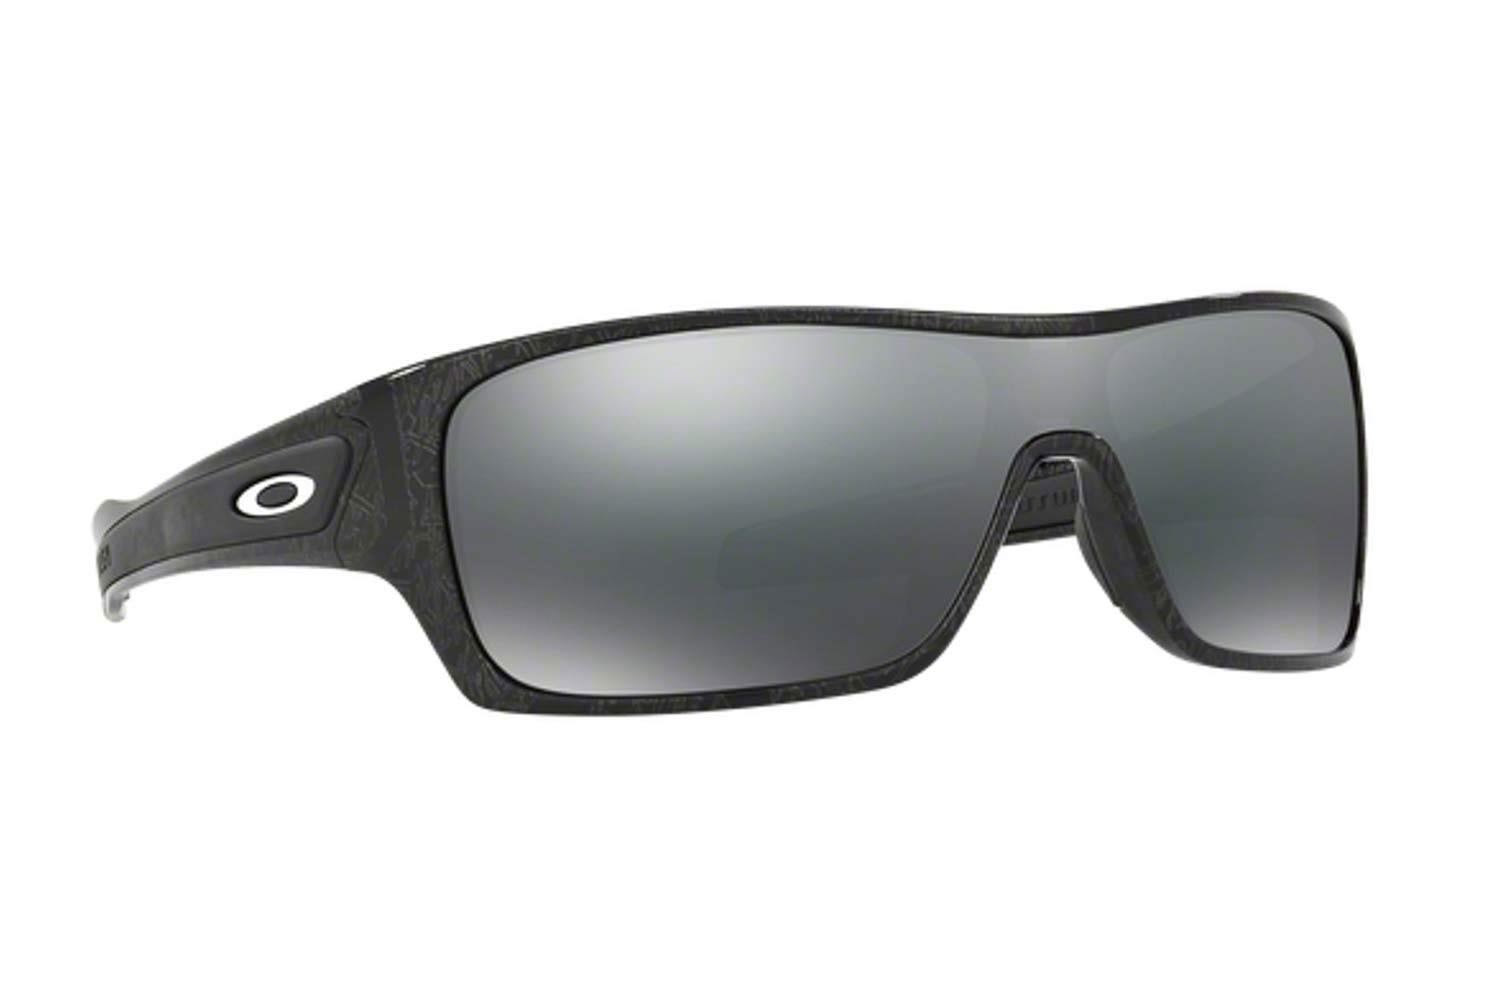 Γυαλιά Oakley Turbine Rotor 9307 02 BlkSilver GhostTxt Black Iridium